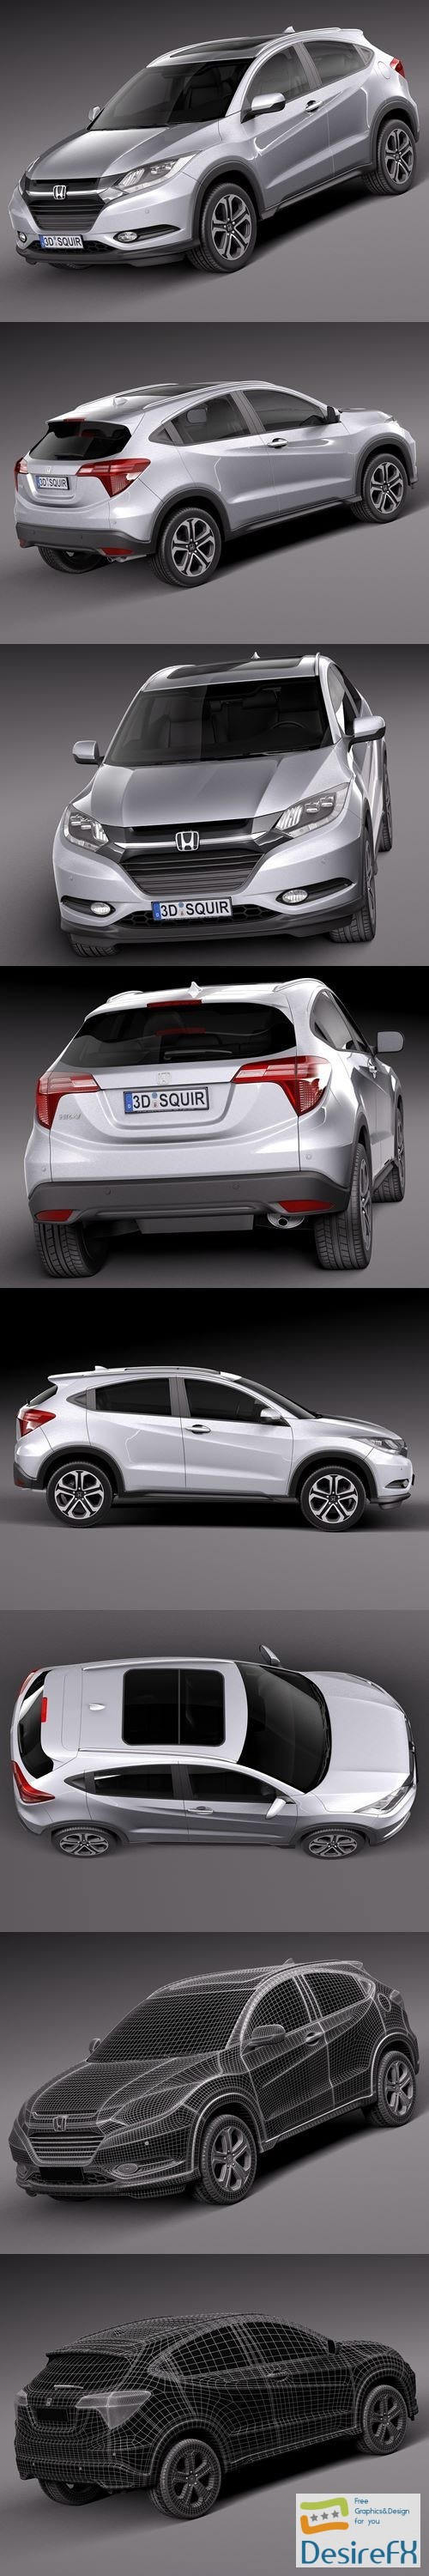 3d-models - Honda HR-V EU 2016 3D Model